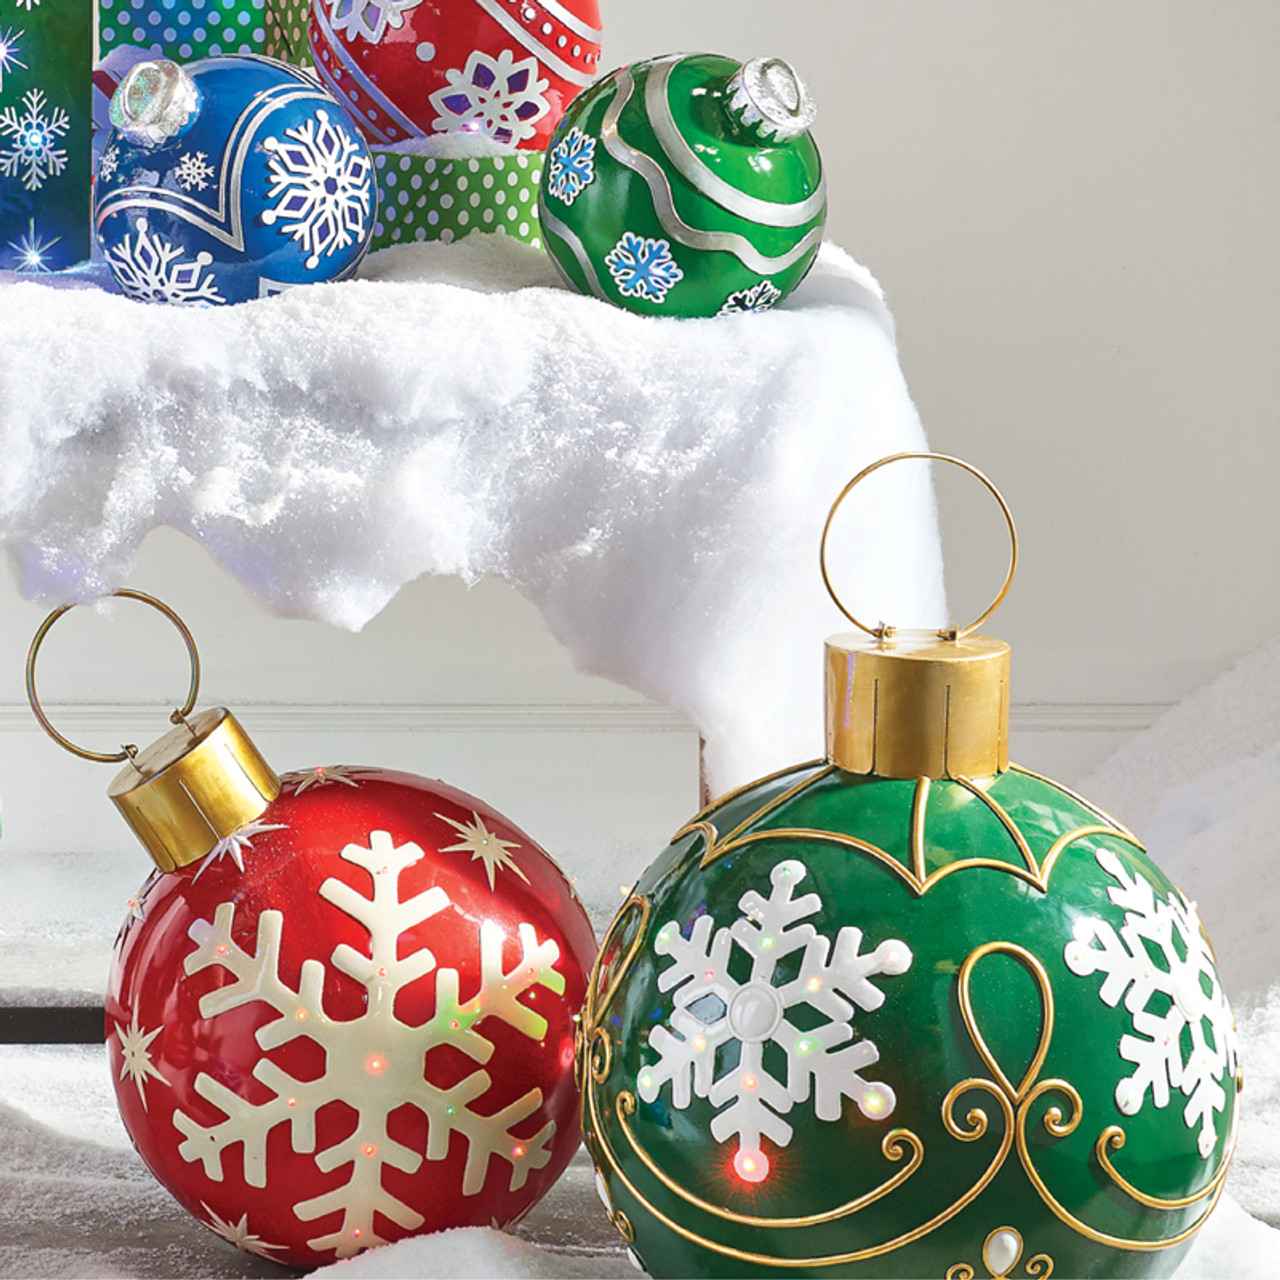 Raz Red or Green LED Lighted Ornament Christmas Decorations